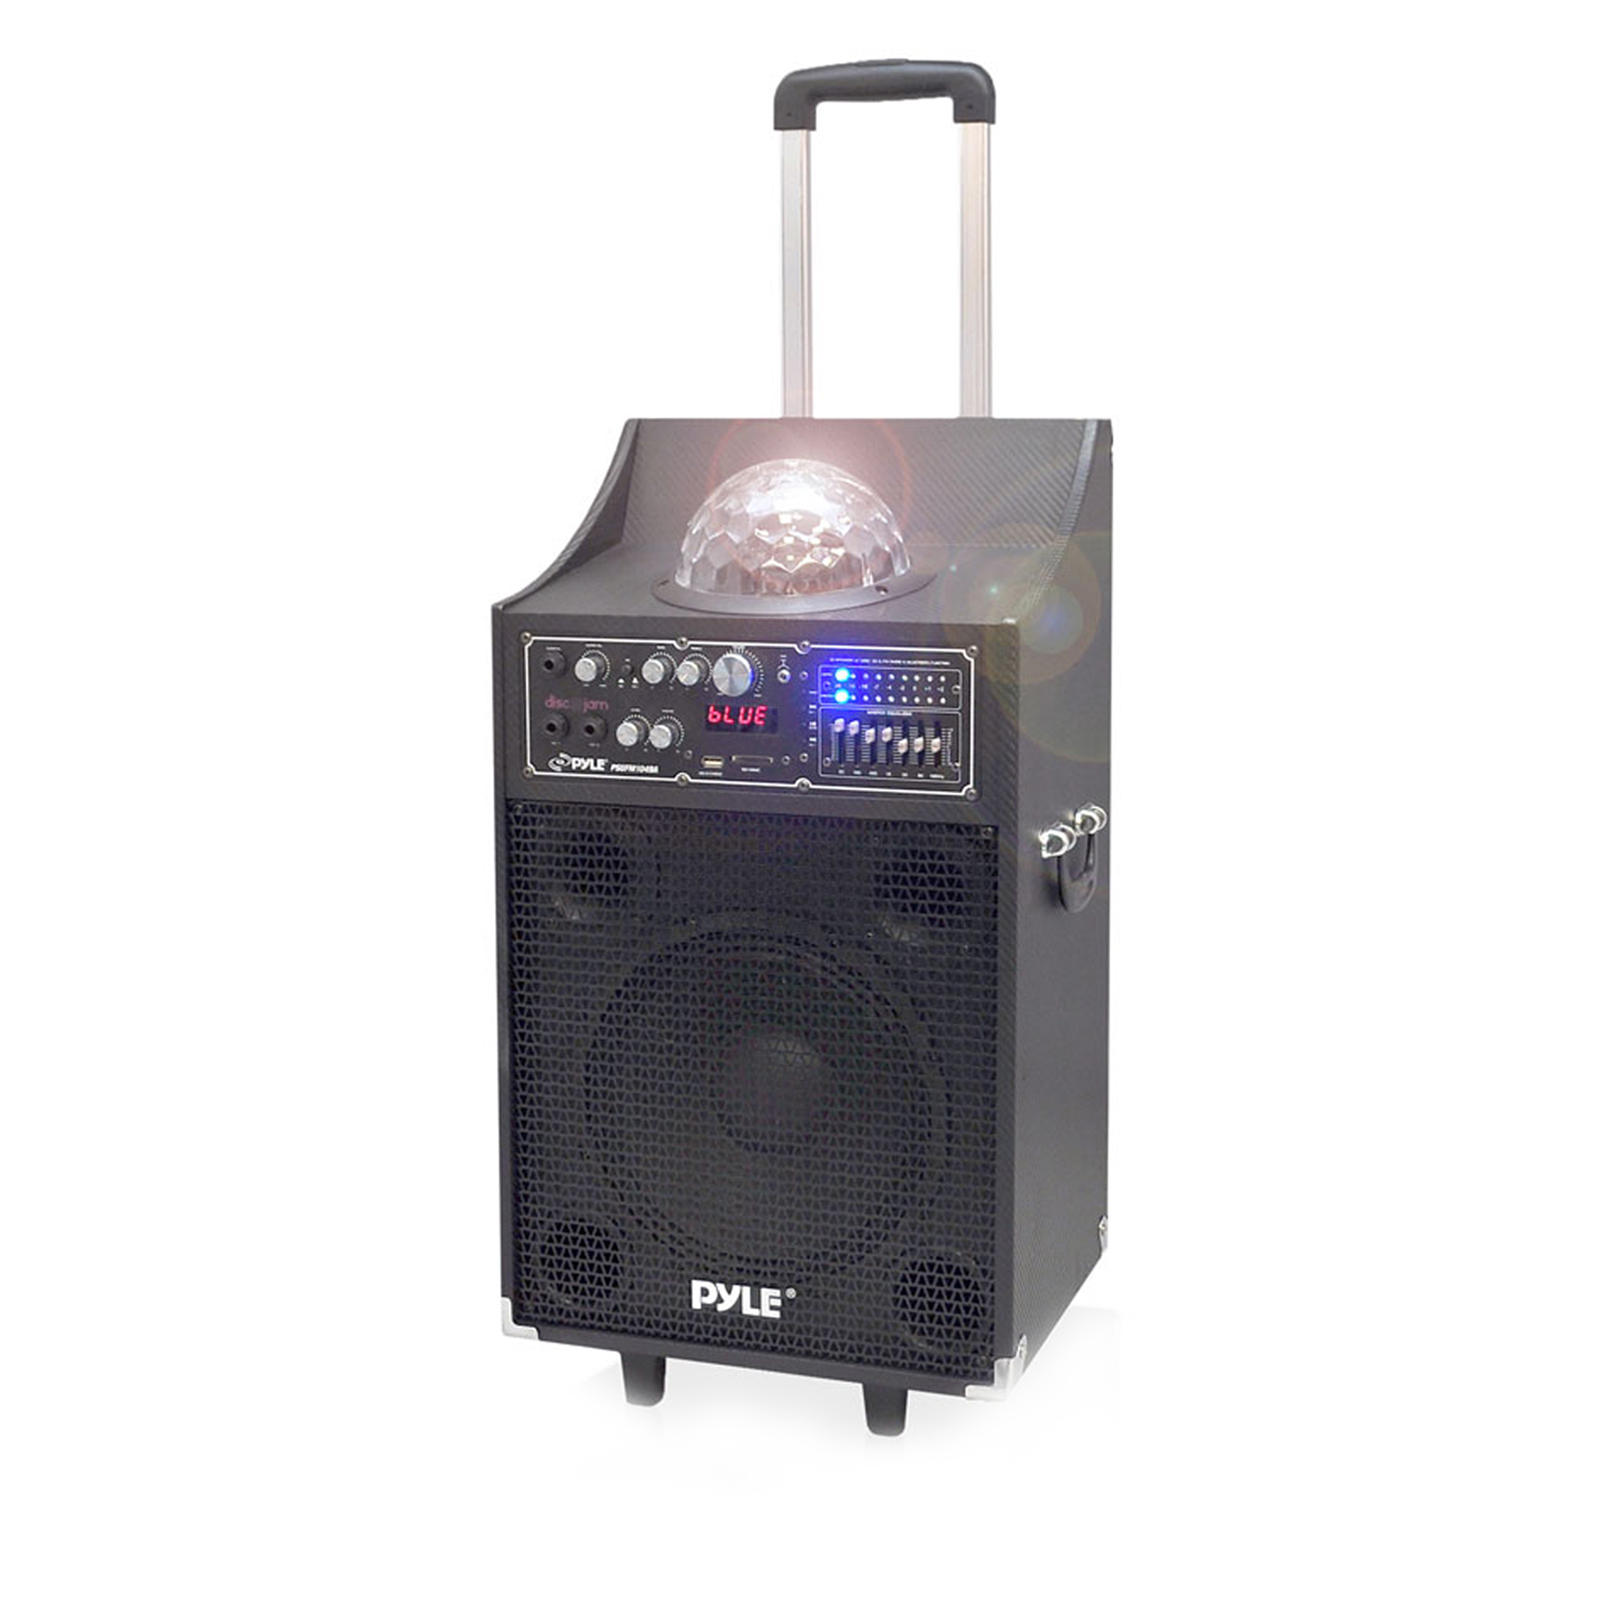 Pyle 600 Watt Disco Jam Powered Two-Way PA Speaker System w  BT Compatibility, USB & SD... by Pyle